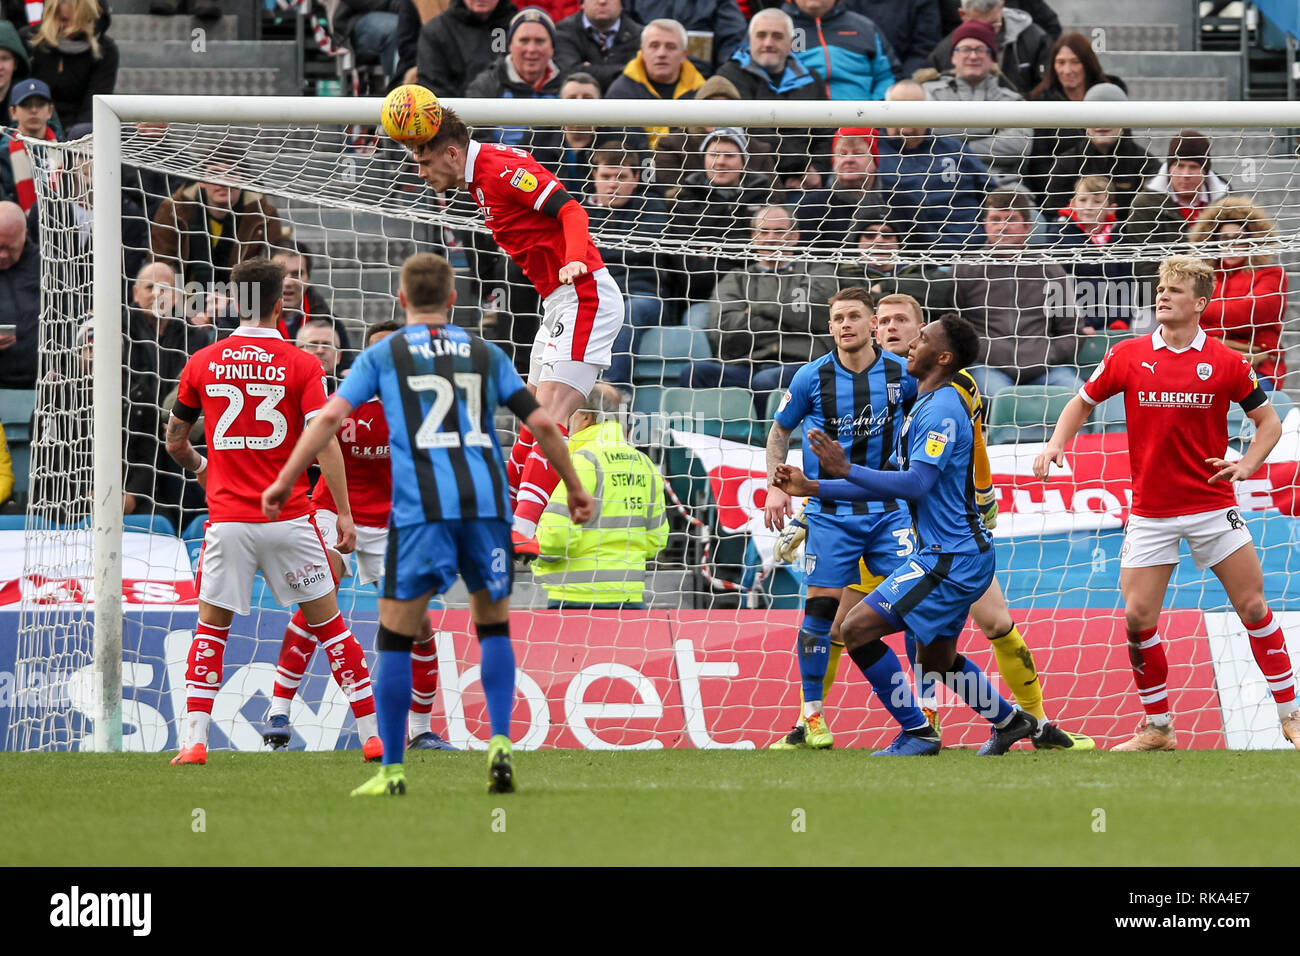 Gillingham, UK. 9th Feb 2019. Liam Lindsay of Barnsley heads a corner clear during the EFL Sky Bet League 1 match between Gillingham and Barnsley at the MEMS Priestfield Stadium, Gillingham, England on 9 February 2019. Photo by Ken Sparks.  Editorial use only, license required for commercial use. No use in betting, games or a single club/league/player publications. Credit: UK Sports Pics Ltd/Alamy Live News - Stock Image